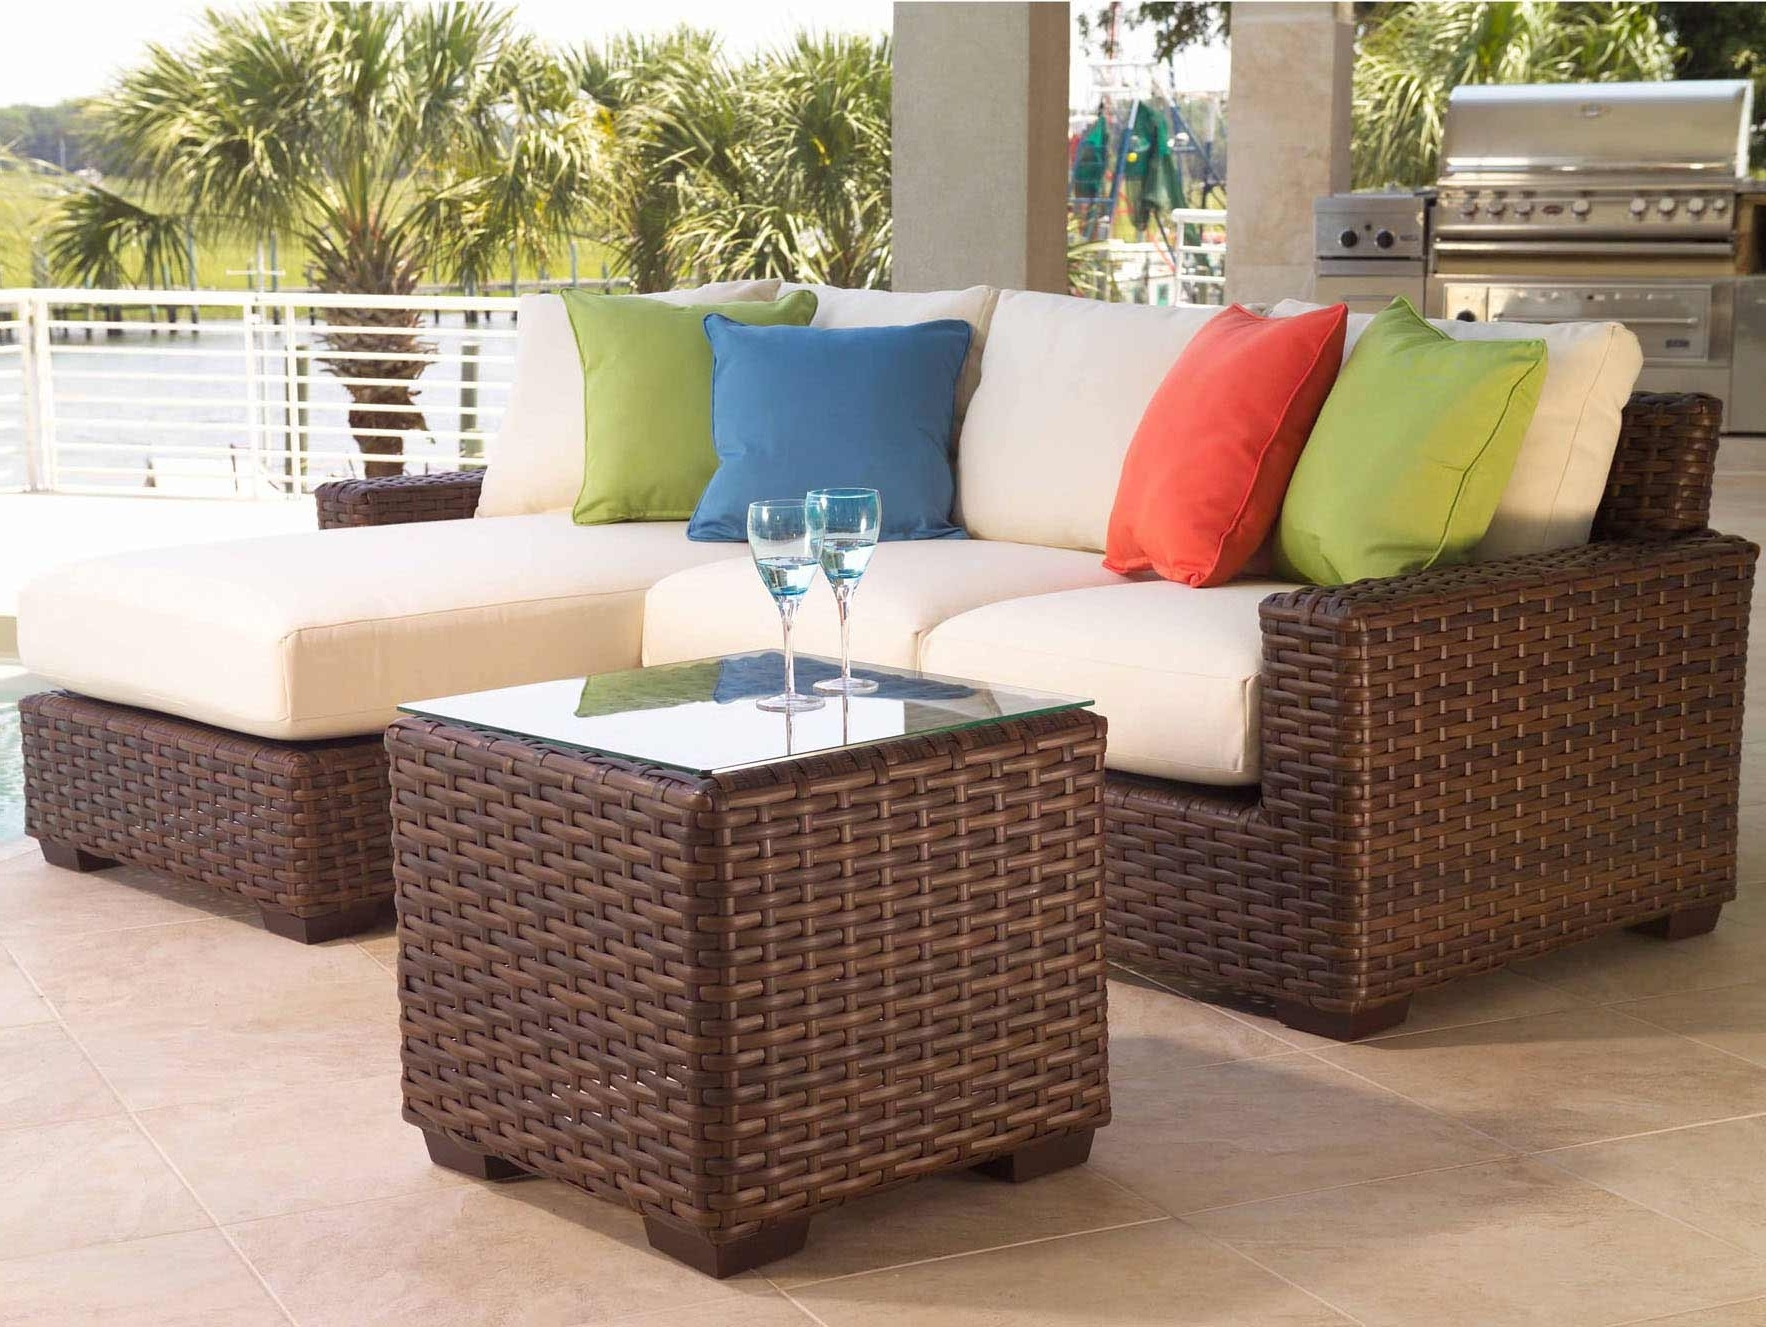 Outdoor Furniture Sets Ideas (View 4 of 15)